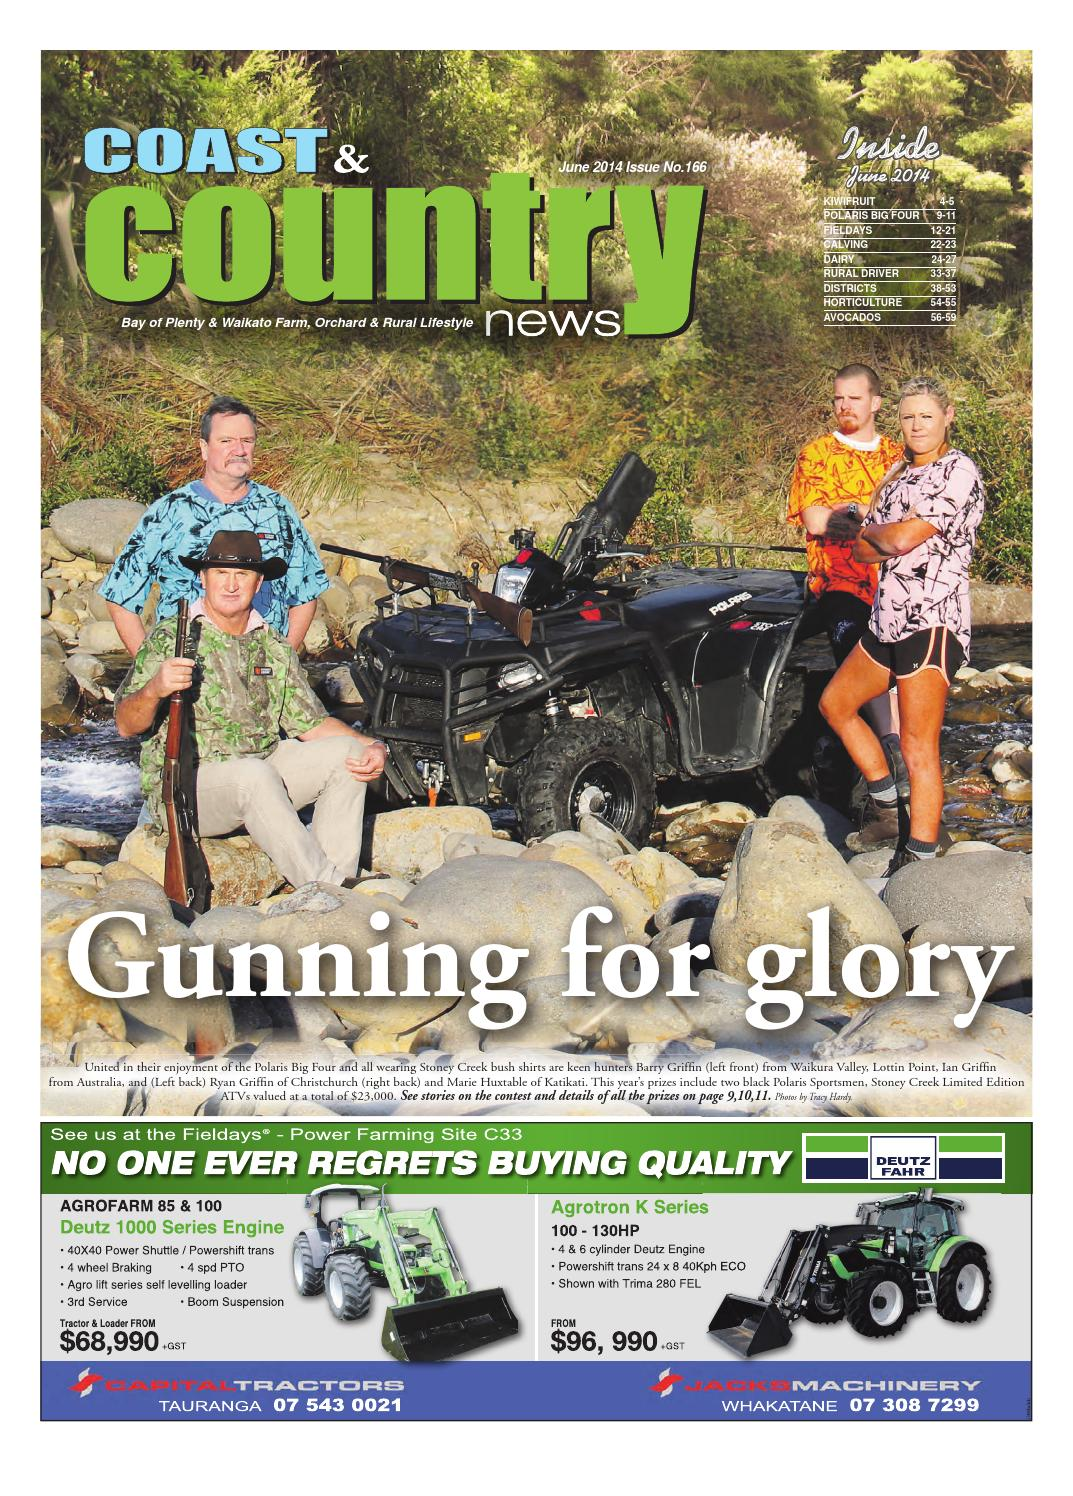 Coast Country News June 2014 By Sunlive Issuu Manual Cableado Electrico Minimoto Chopper 49